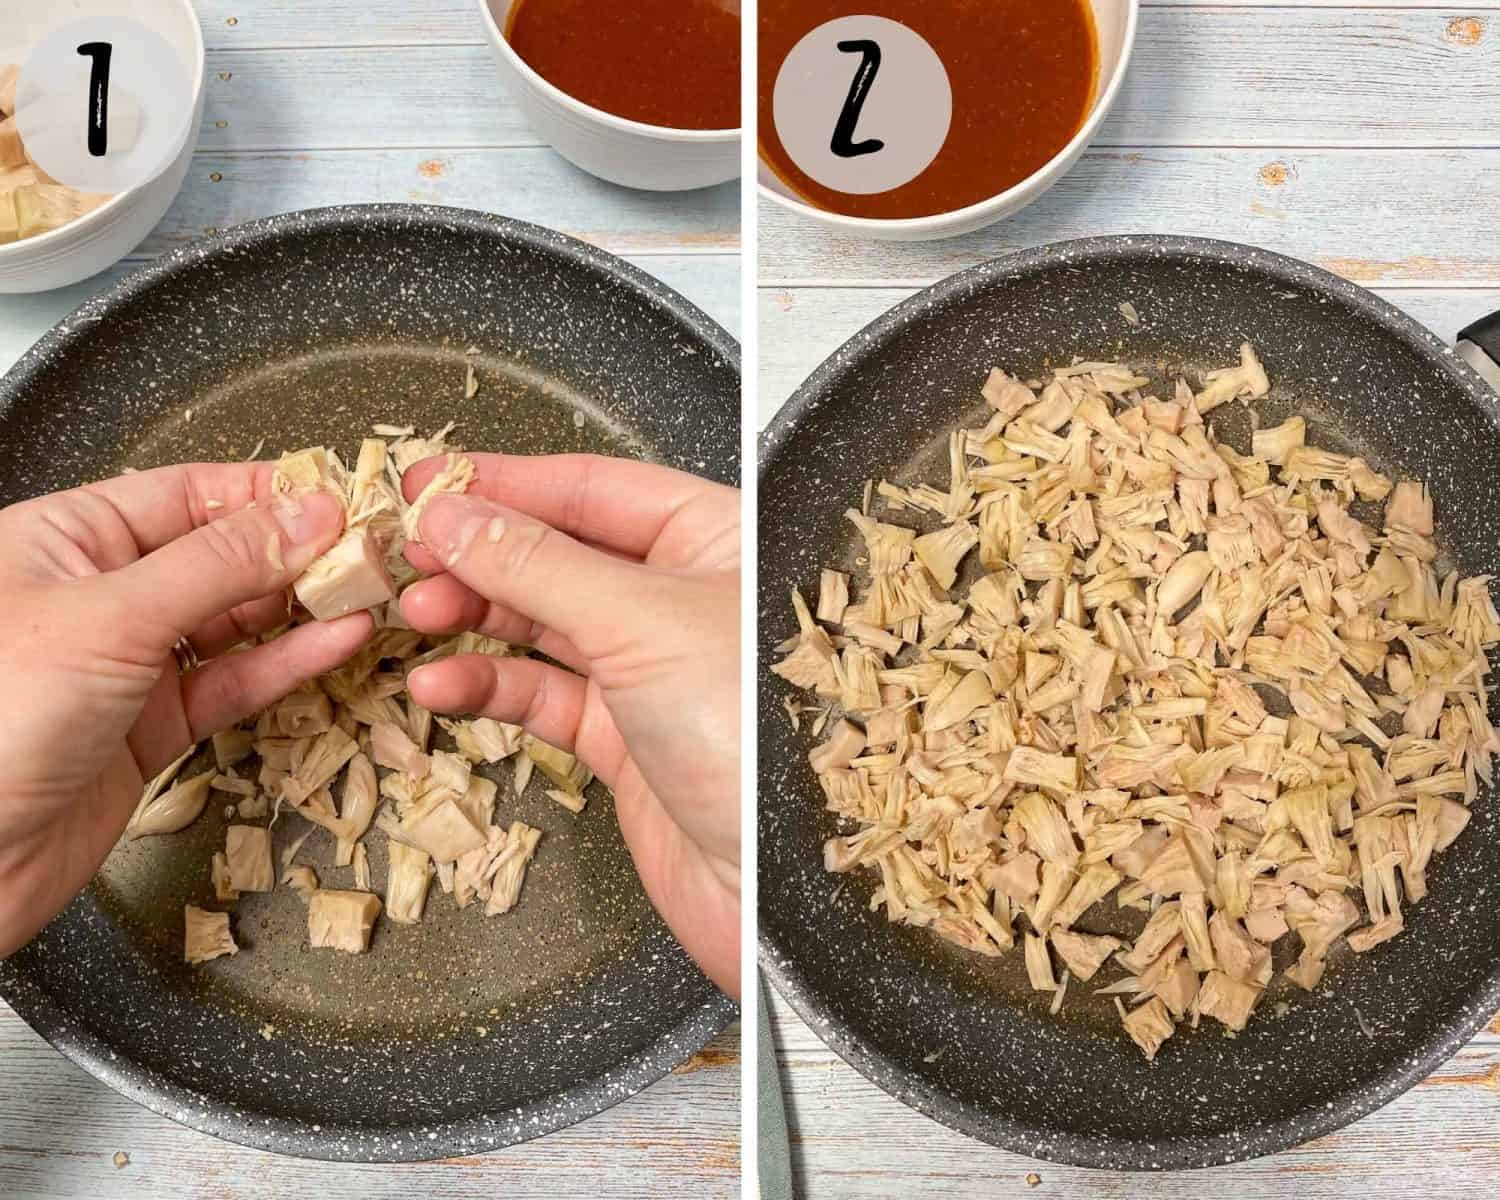 shredding jackfruit with hands into large skillet